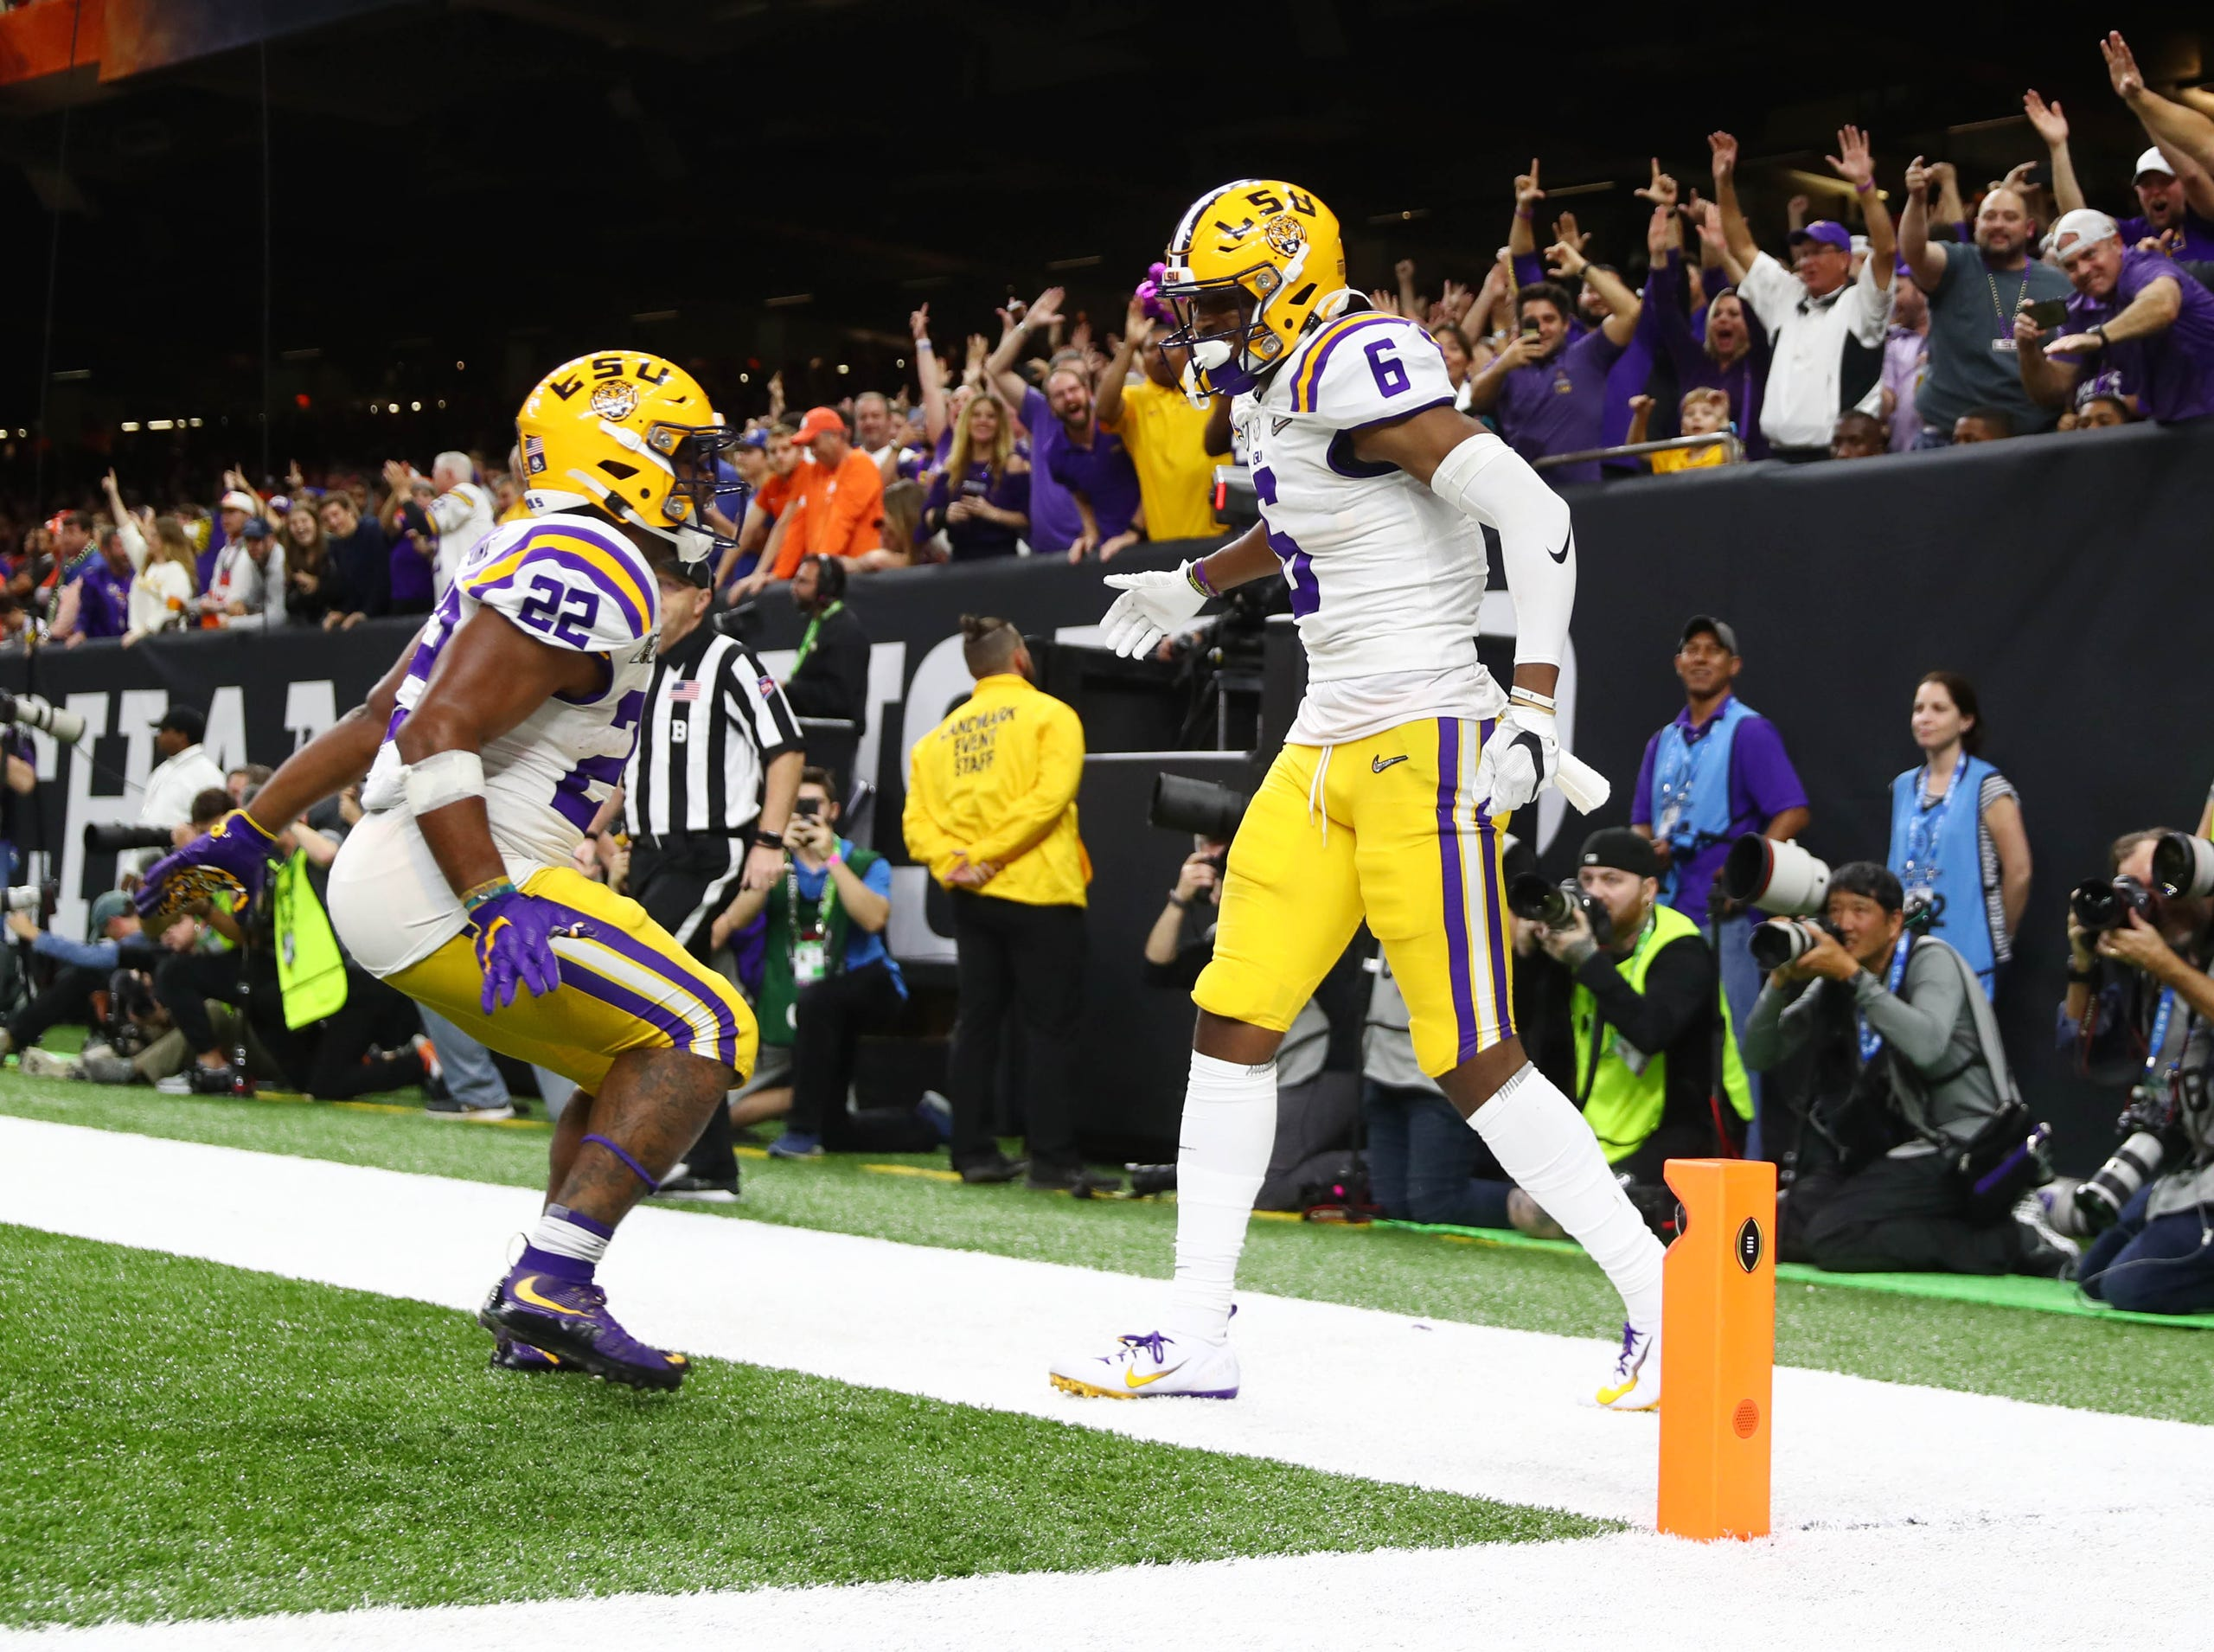 LSU Tigers wide receiver Terrace Marshall Jr. (6) celebrates with running back Clyde Edwards-Helaire after scoring a touchdown in the fourth quarter.